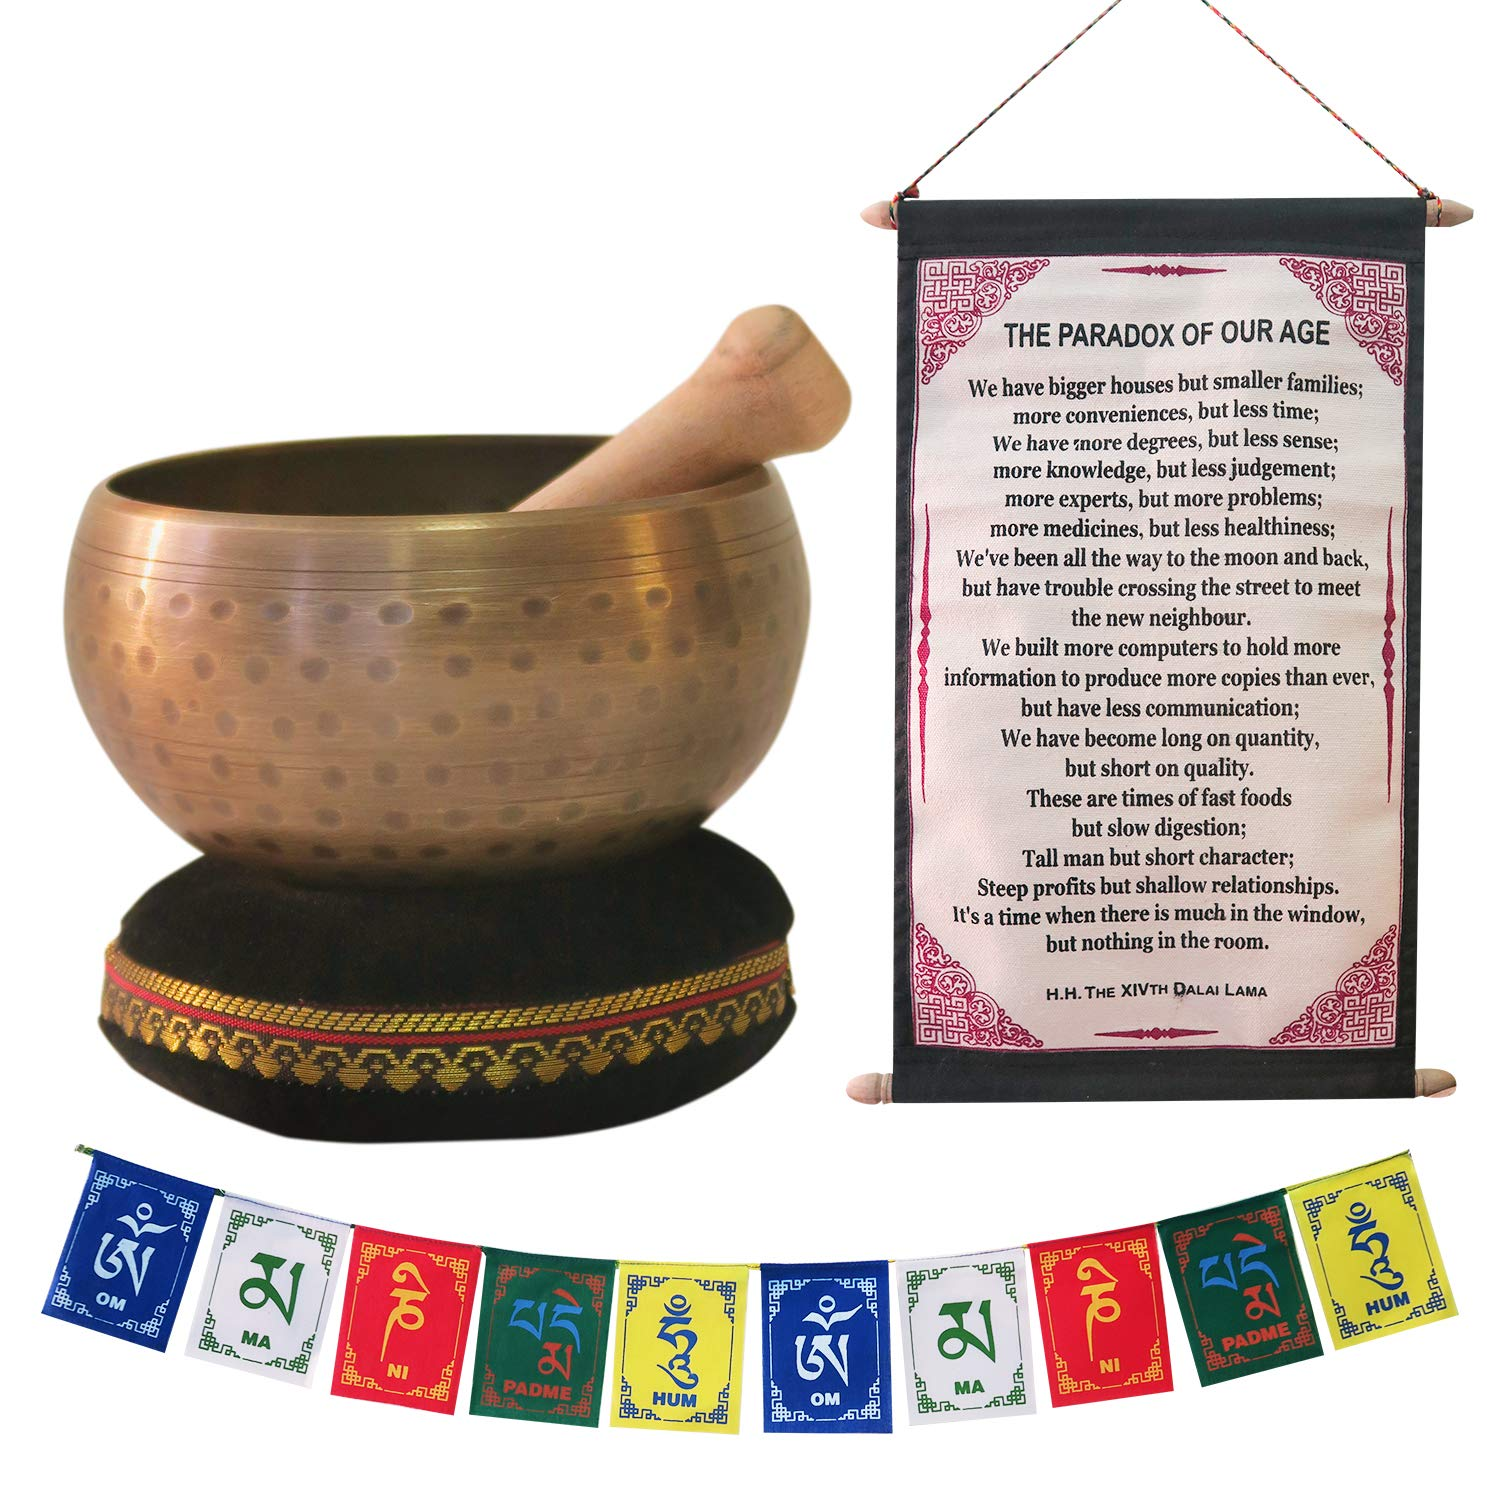 Tibetan Singing Bowl for Meditation, Healing & Yoga 4''/5''/6'' Set with Mallet & Velvet Cushion, with Free Gift of Tibetan Prayer Flags & The Dalai Lama Quote Wall Art for Peace, Harmony, Stress Relief by Tibet Tree of Life